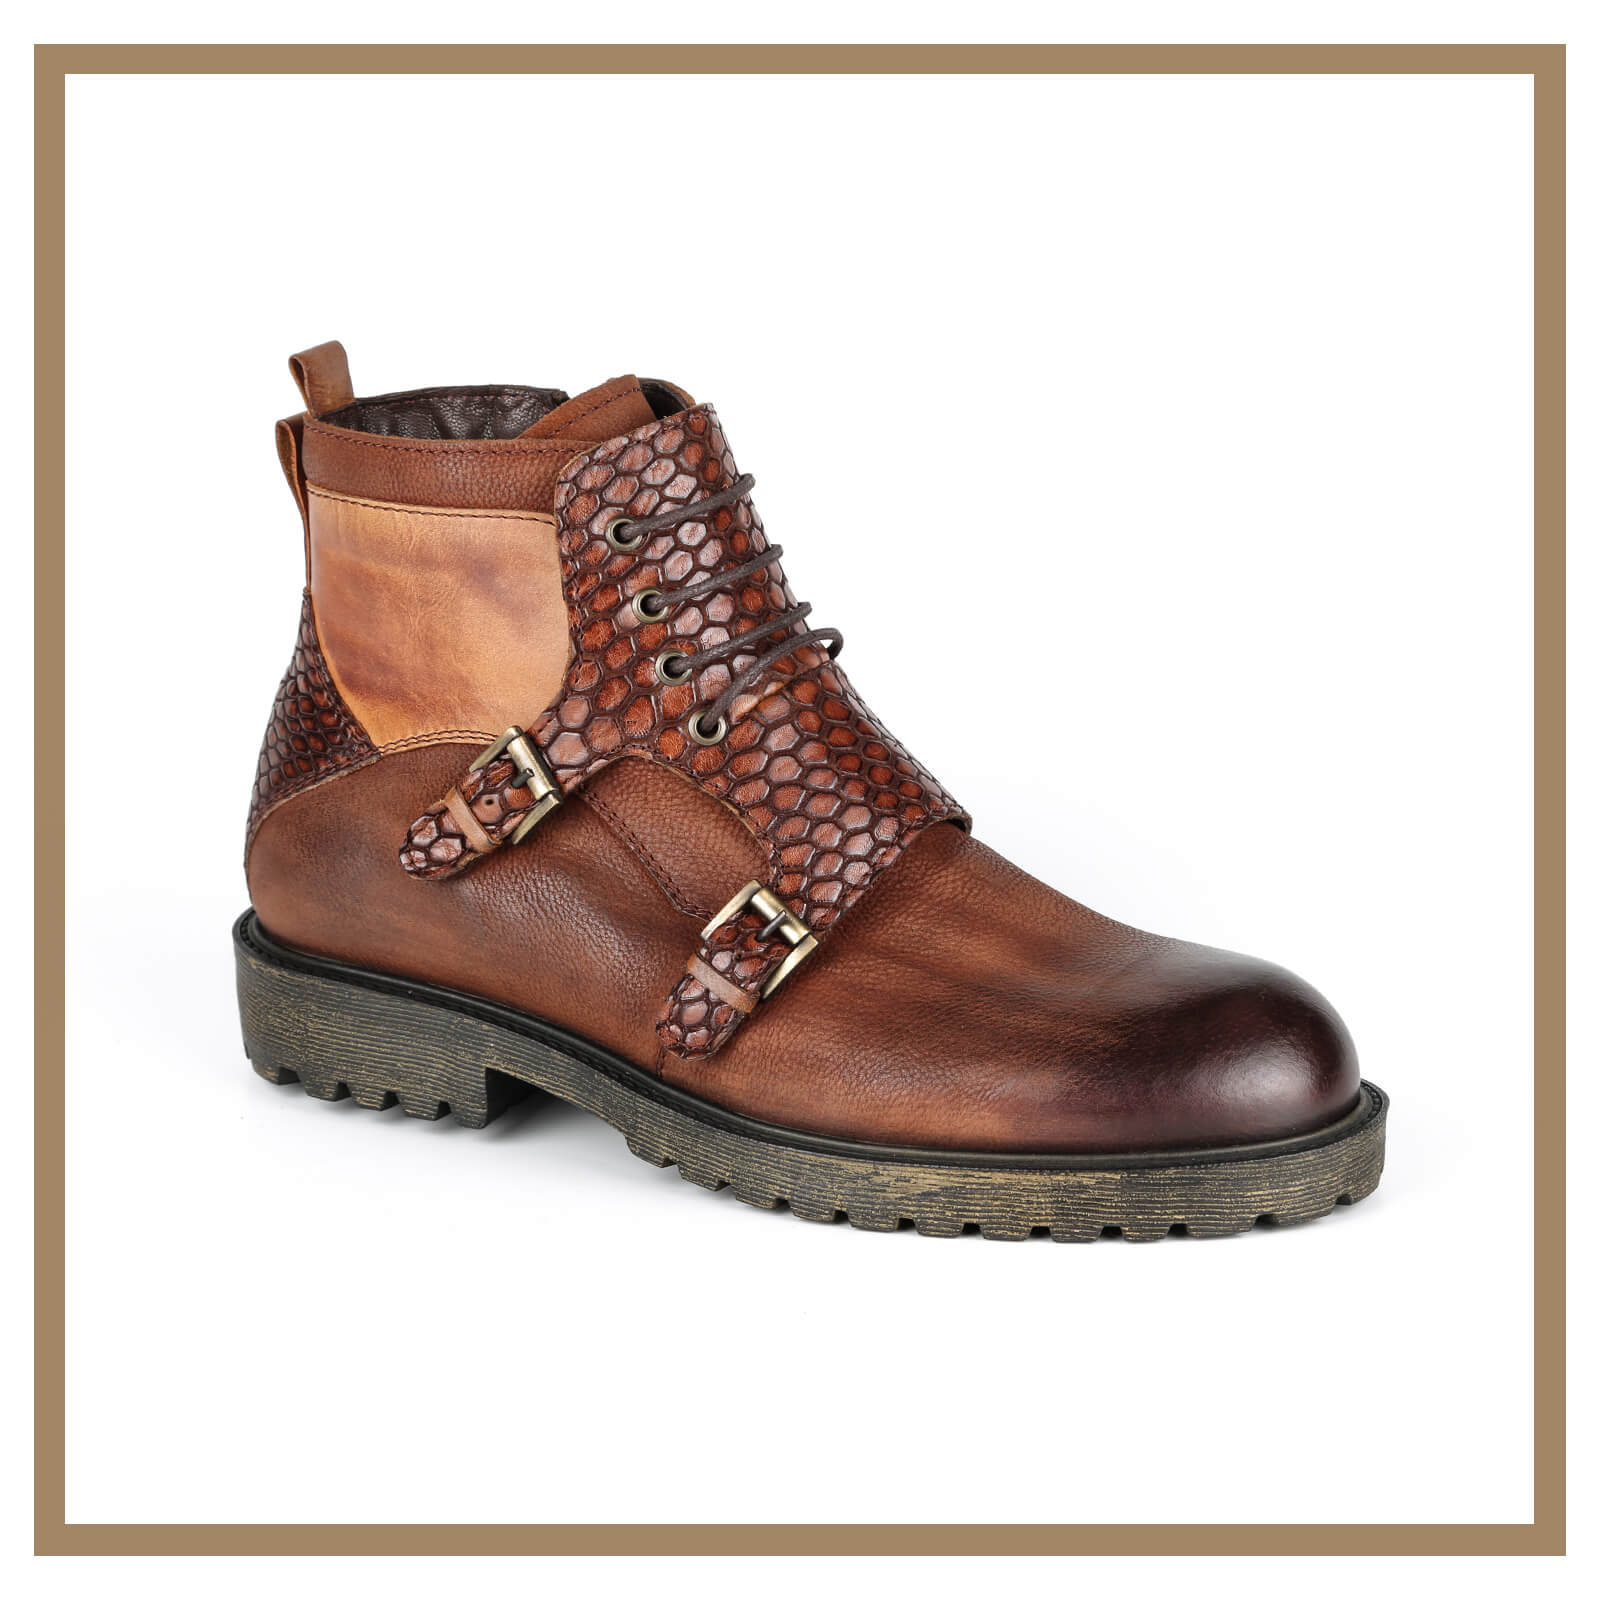 Leather Man Boots 001